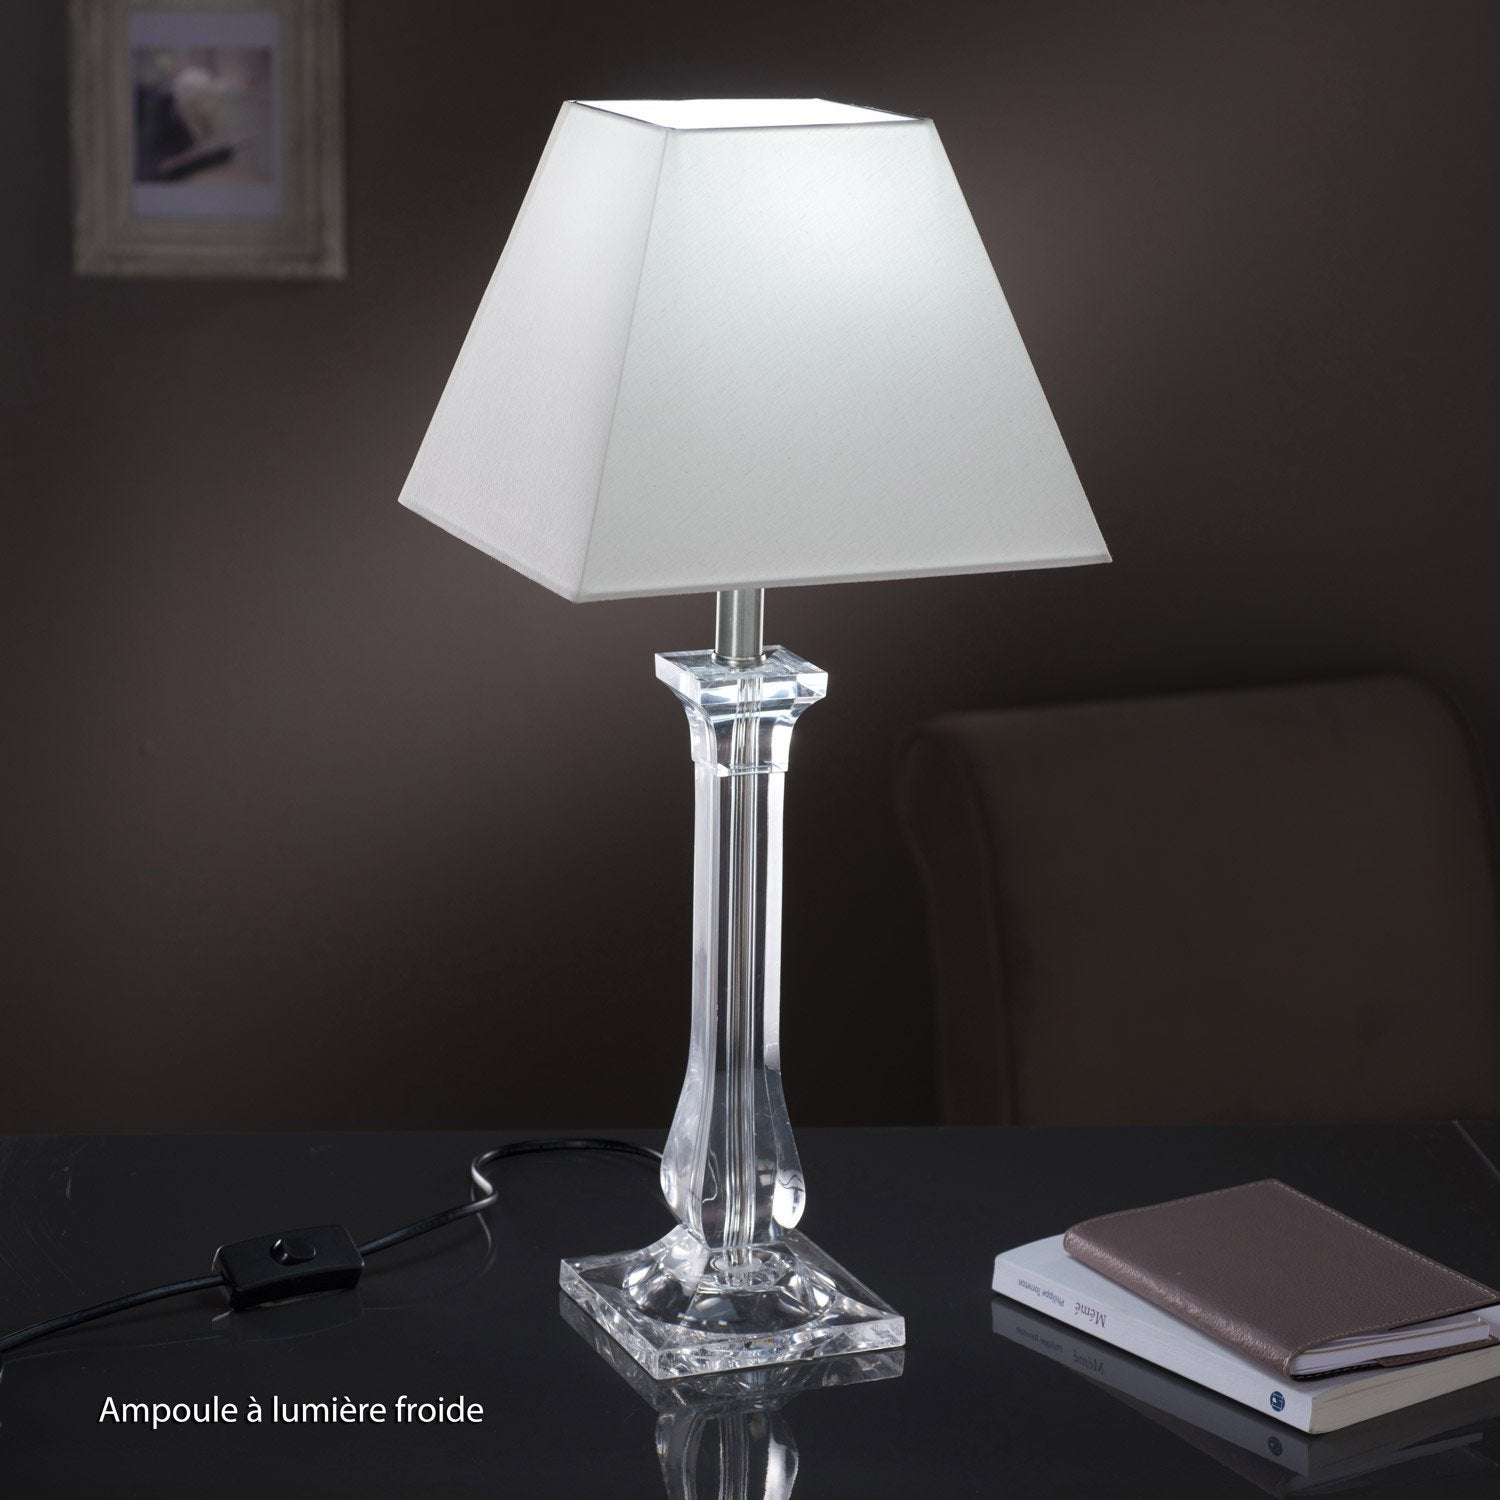 Pied de lampe fantasy acrylique transparent 39 cm for Lampe de chevet en cristal